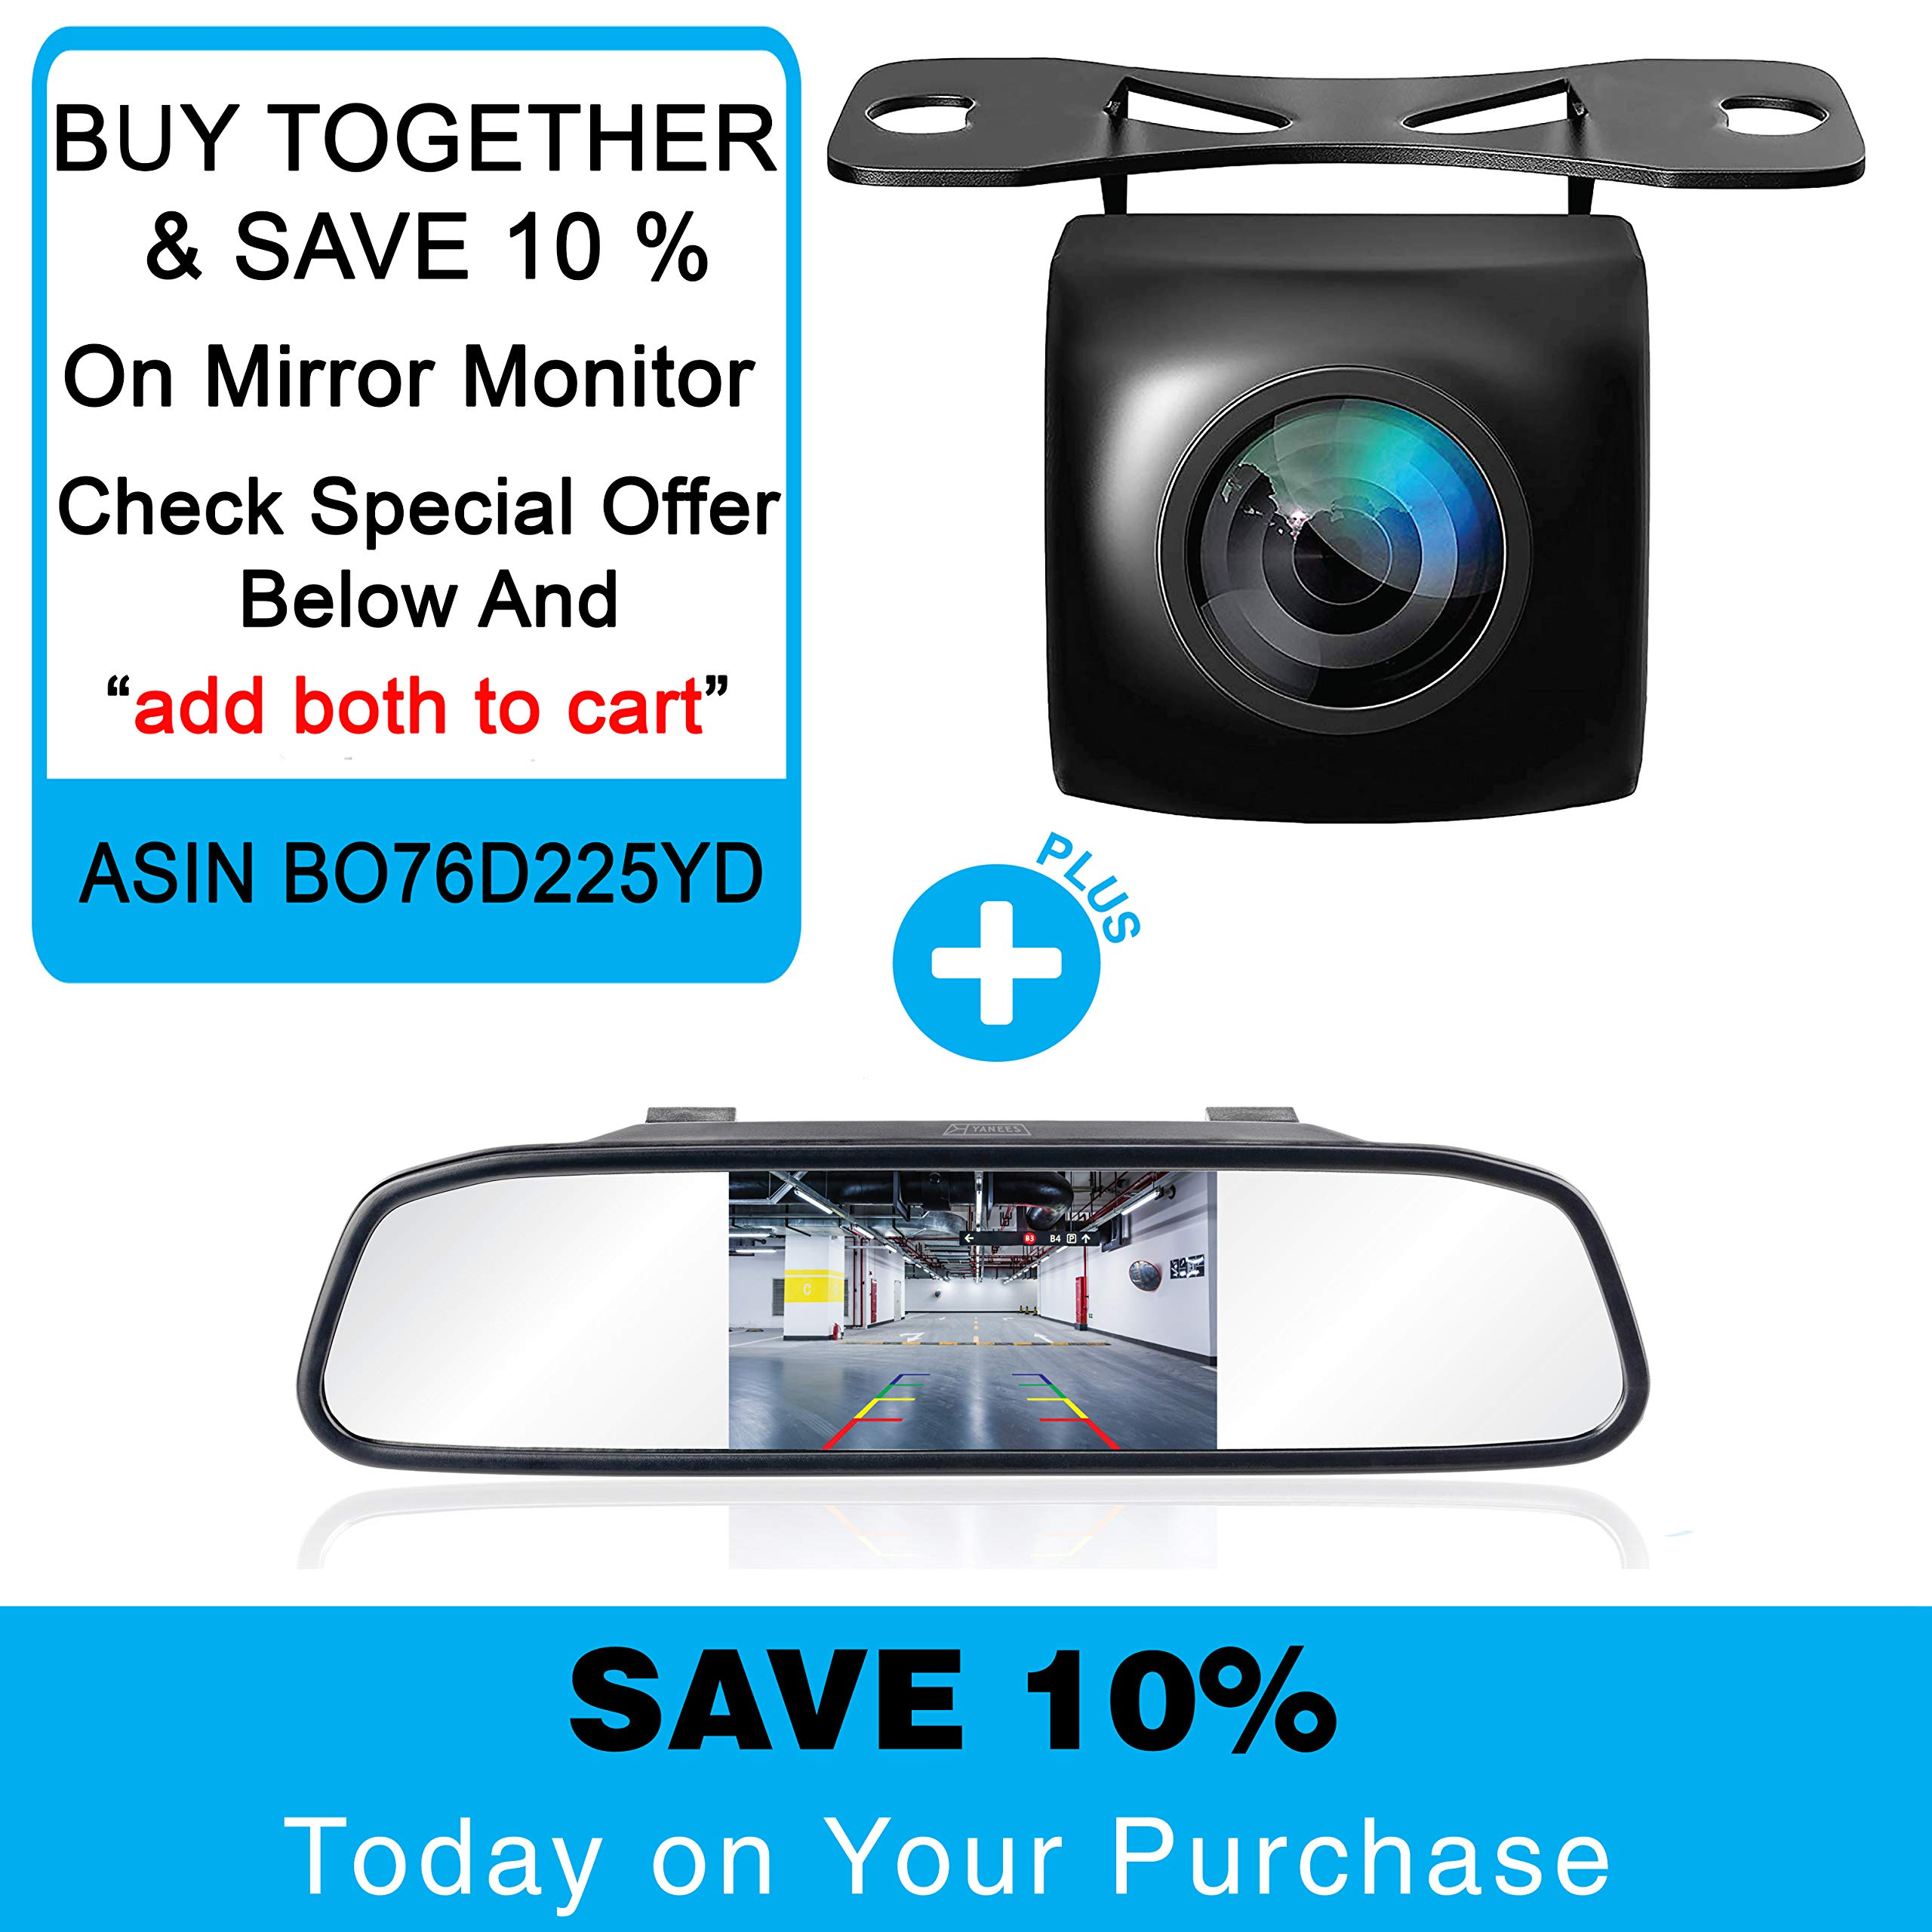 Backup Camera Night Vision - HD 1080p - Car Rear View Parking Camera - Best 170° Wide View Angel - Waterproof Reverse Auto Back Up Car Backing Camera - High Definition - Fits All Vehicles by Yanees by YANEES (Image #6)